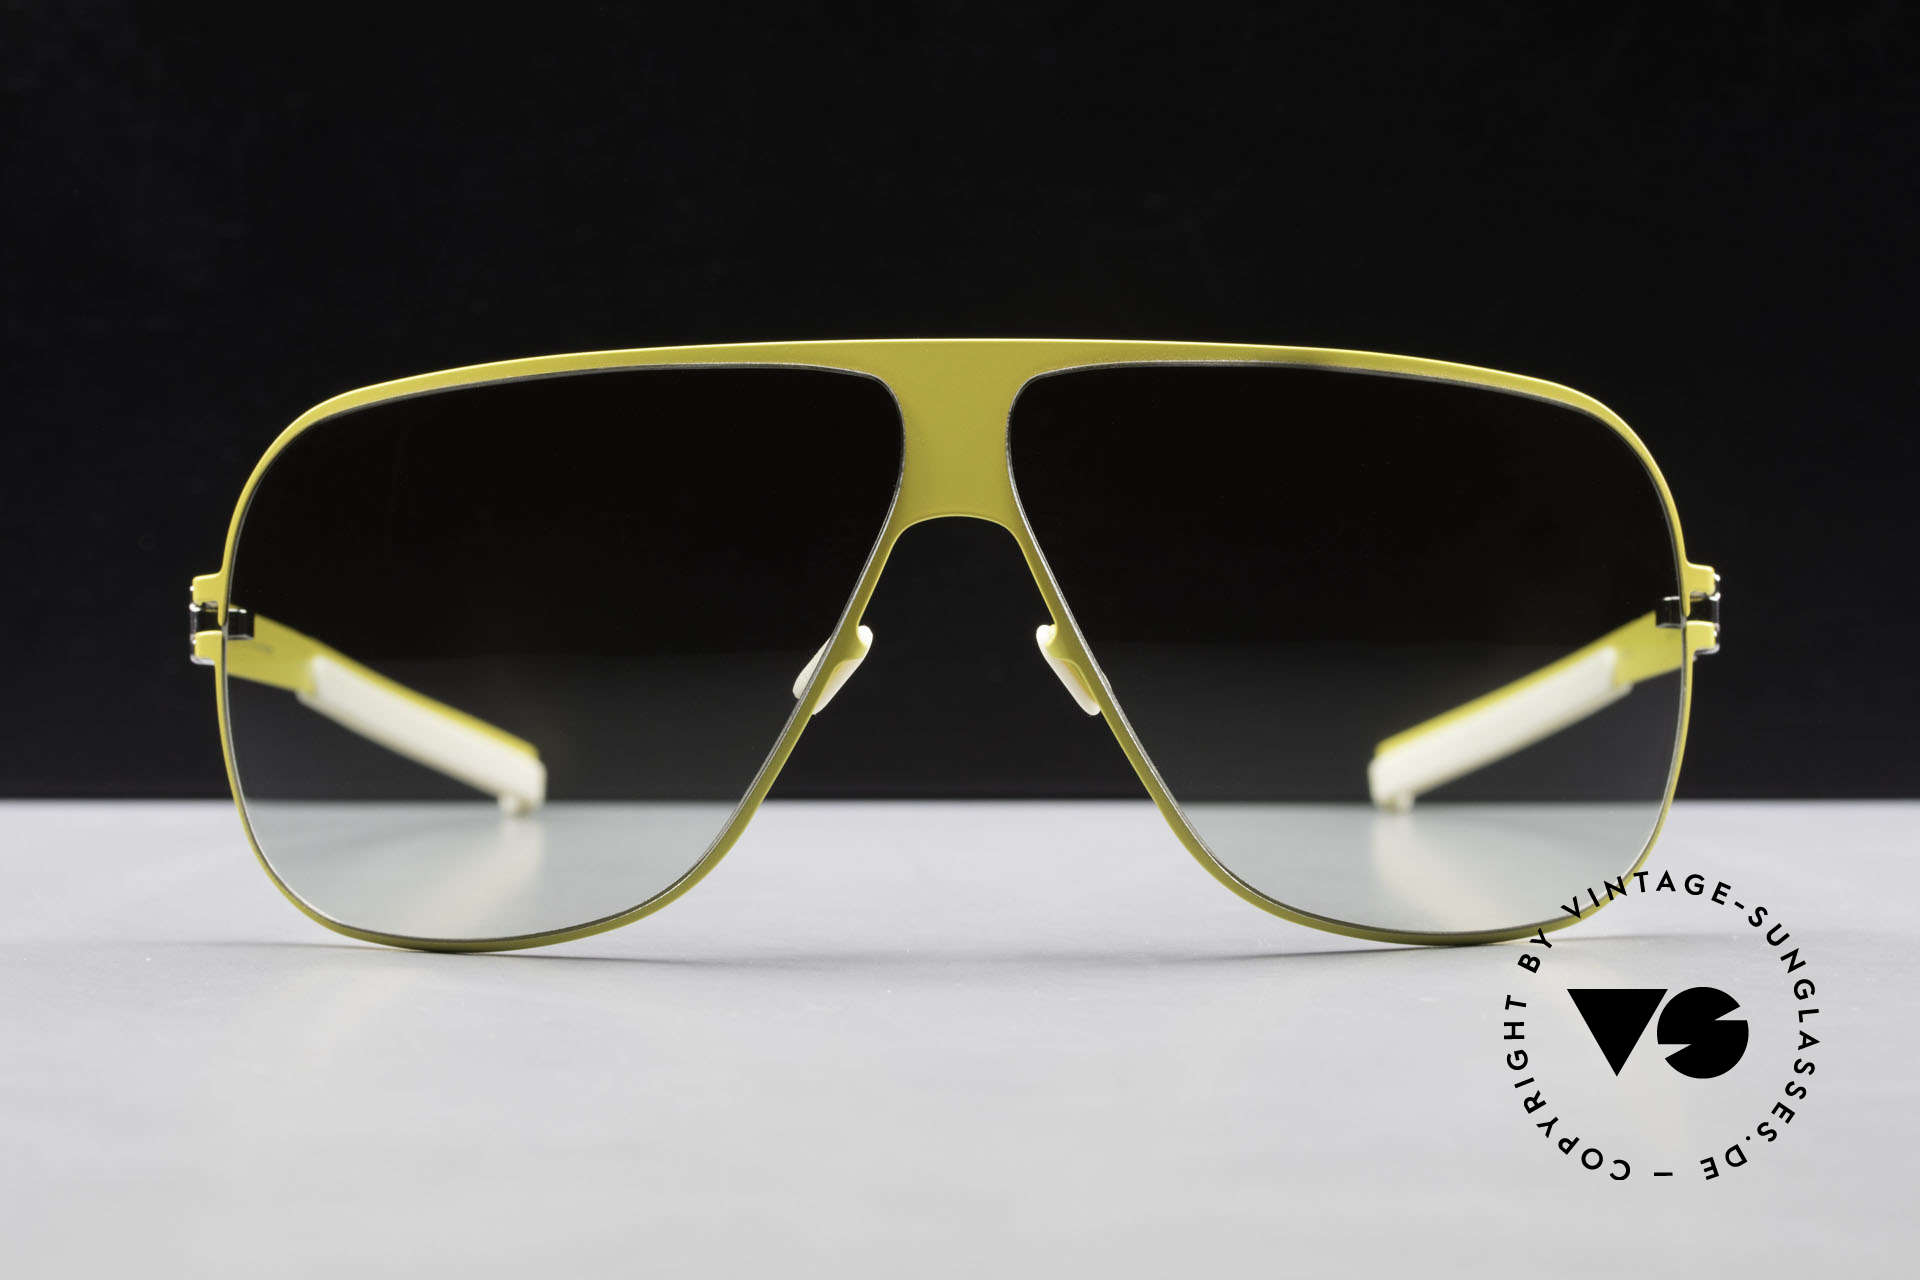 Mykita Hector Aviator Mykita Shades 2009's, flexible metal frame = innovative and elegant likewise, Made for Men